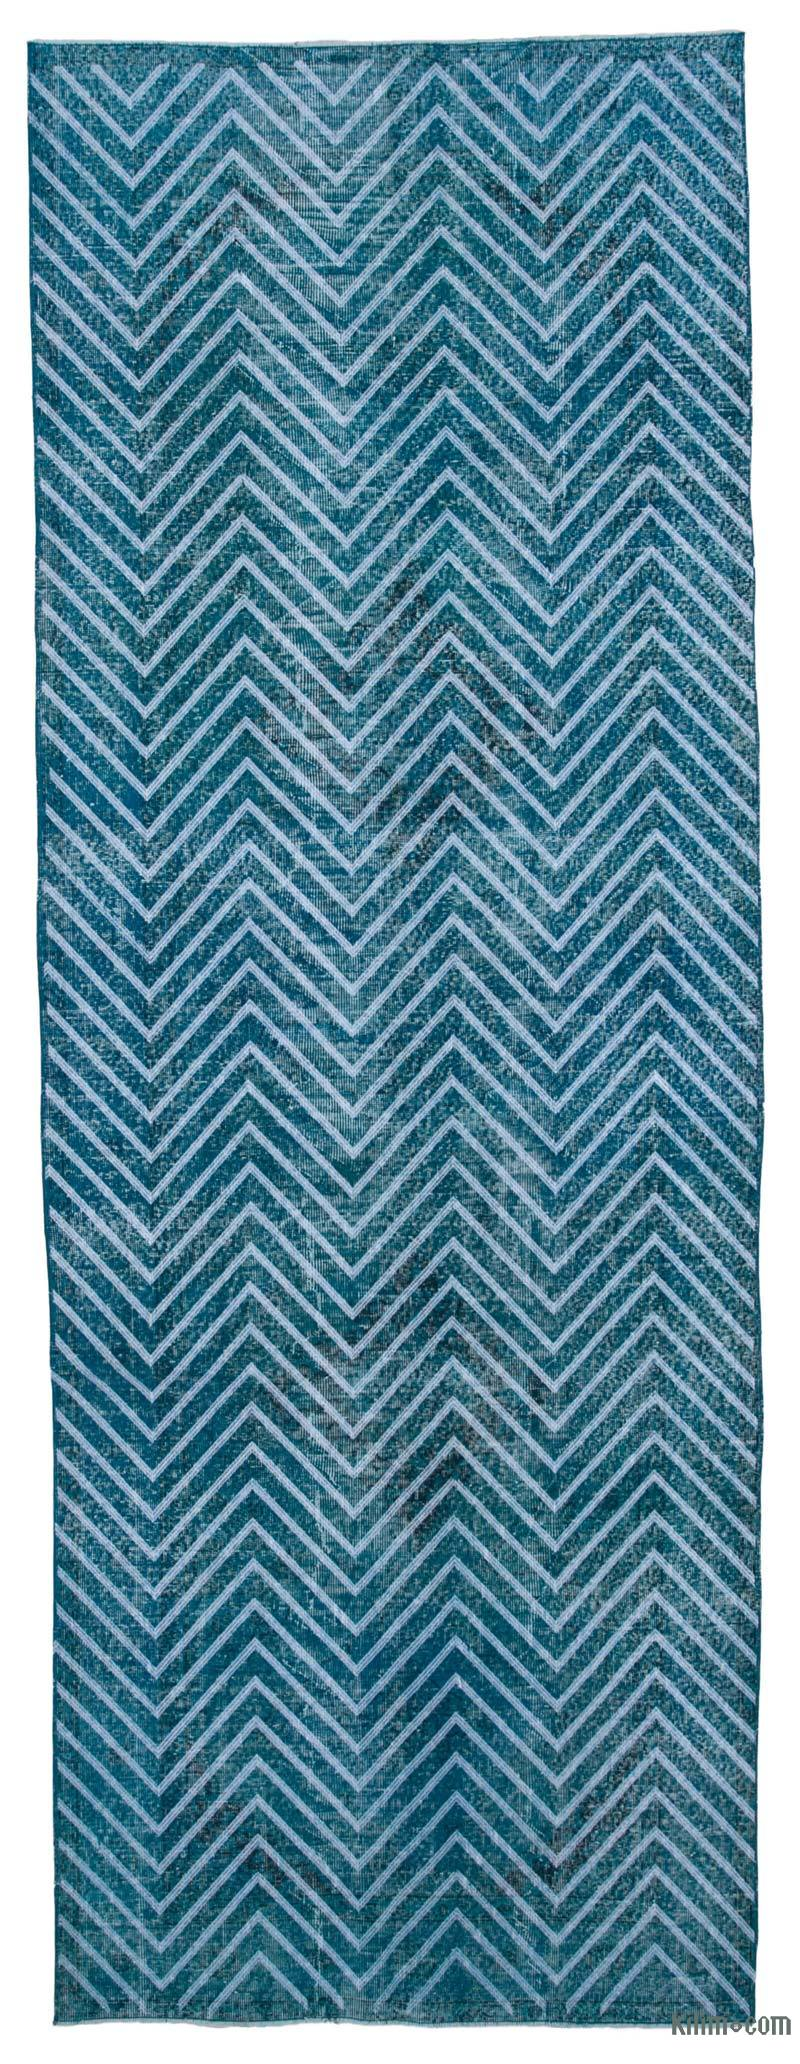 """Embroidered Over-dyed Turkish Vintage Runner - 4' 8"""" x 13' 1"""" (56 in. x 157 in.) - K0038640"""